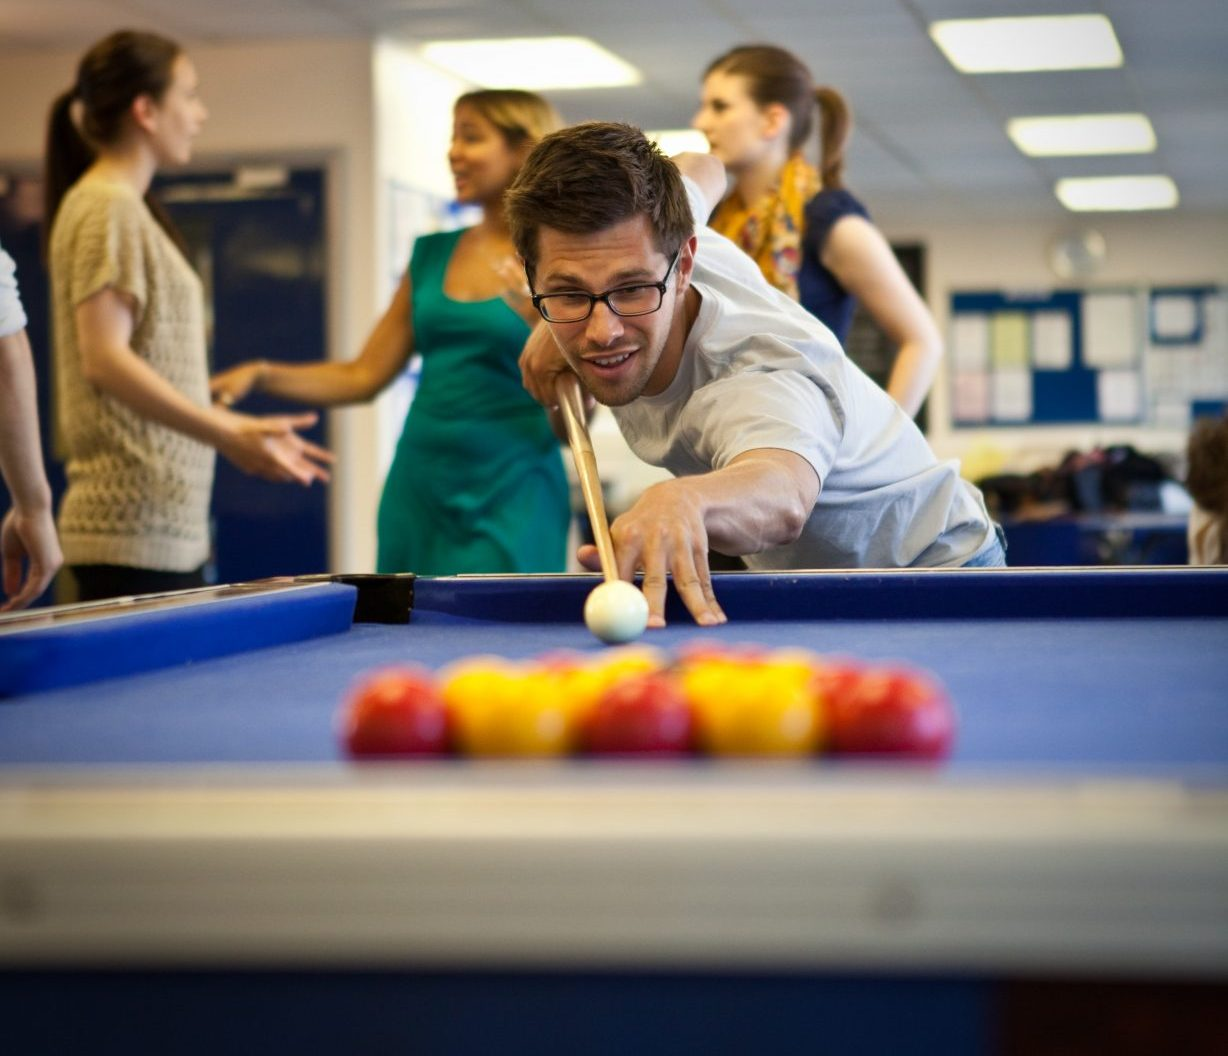 https://www.lsi-portsmouth.co.uk/wp-content/uploads/2019/02/Playing-pool-e1568277986387.jpg